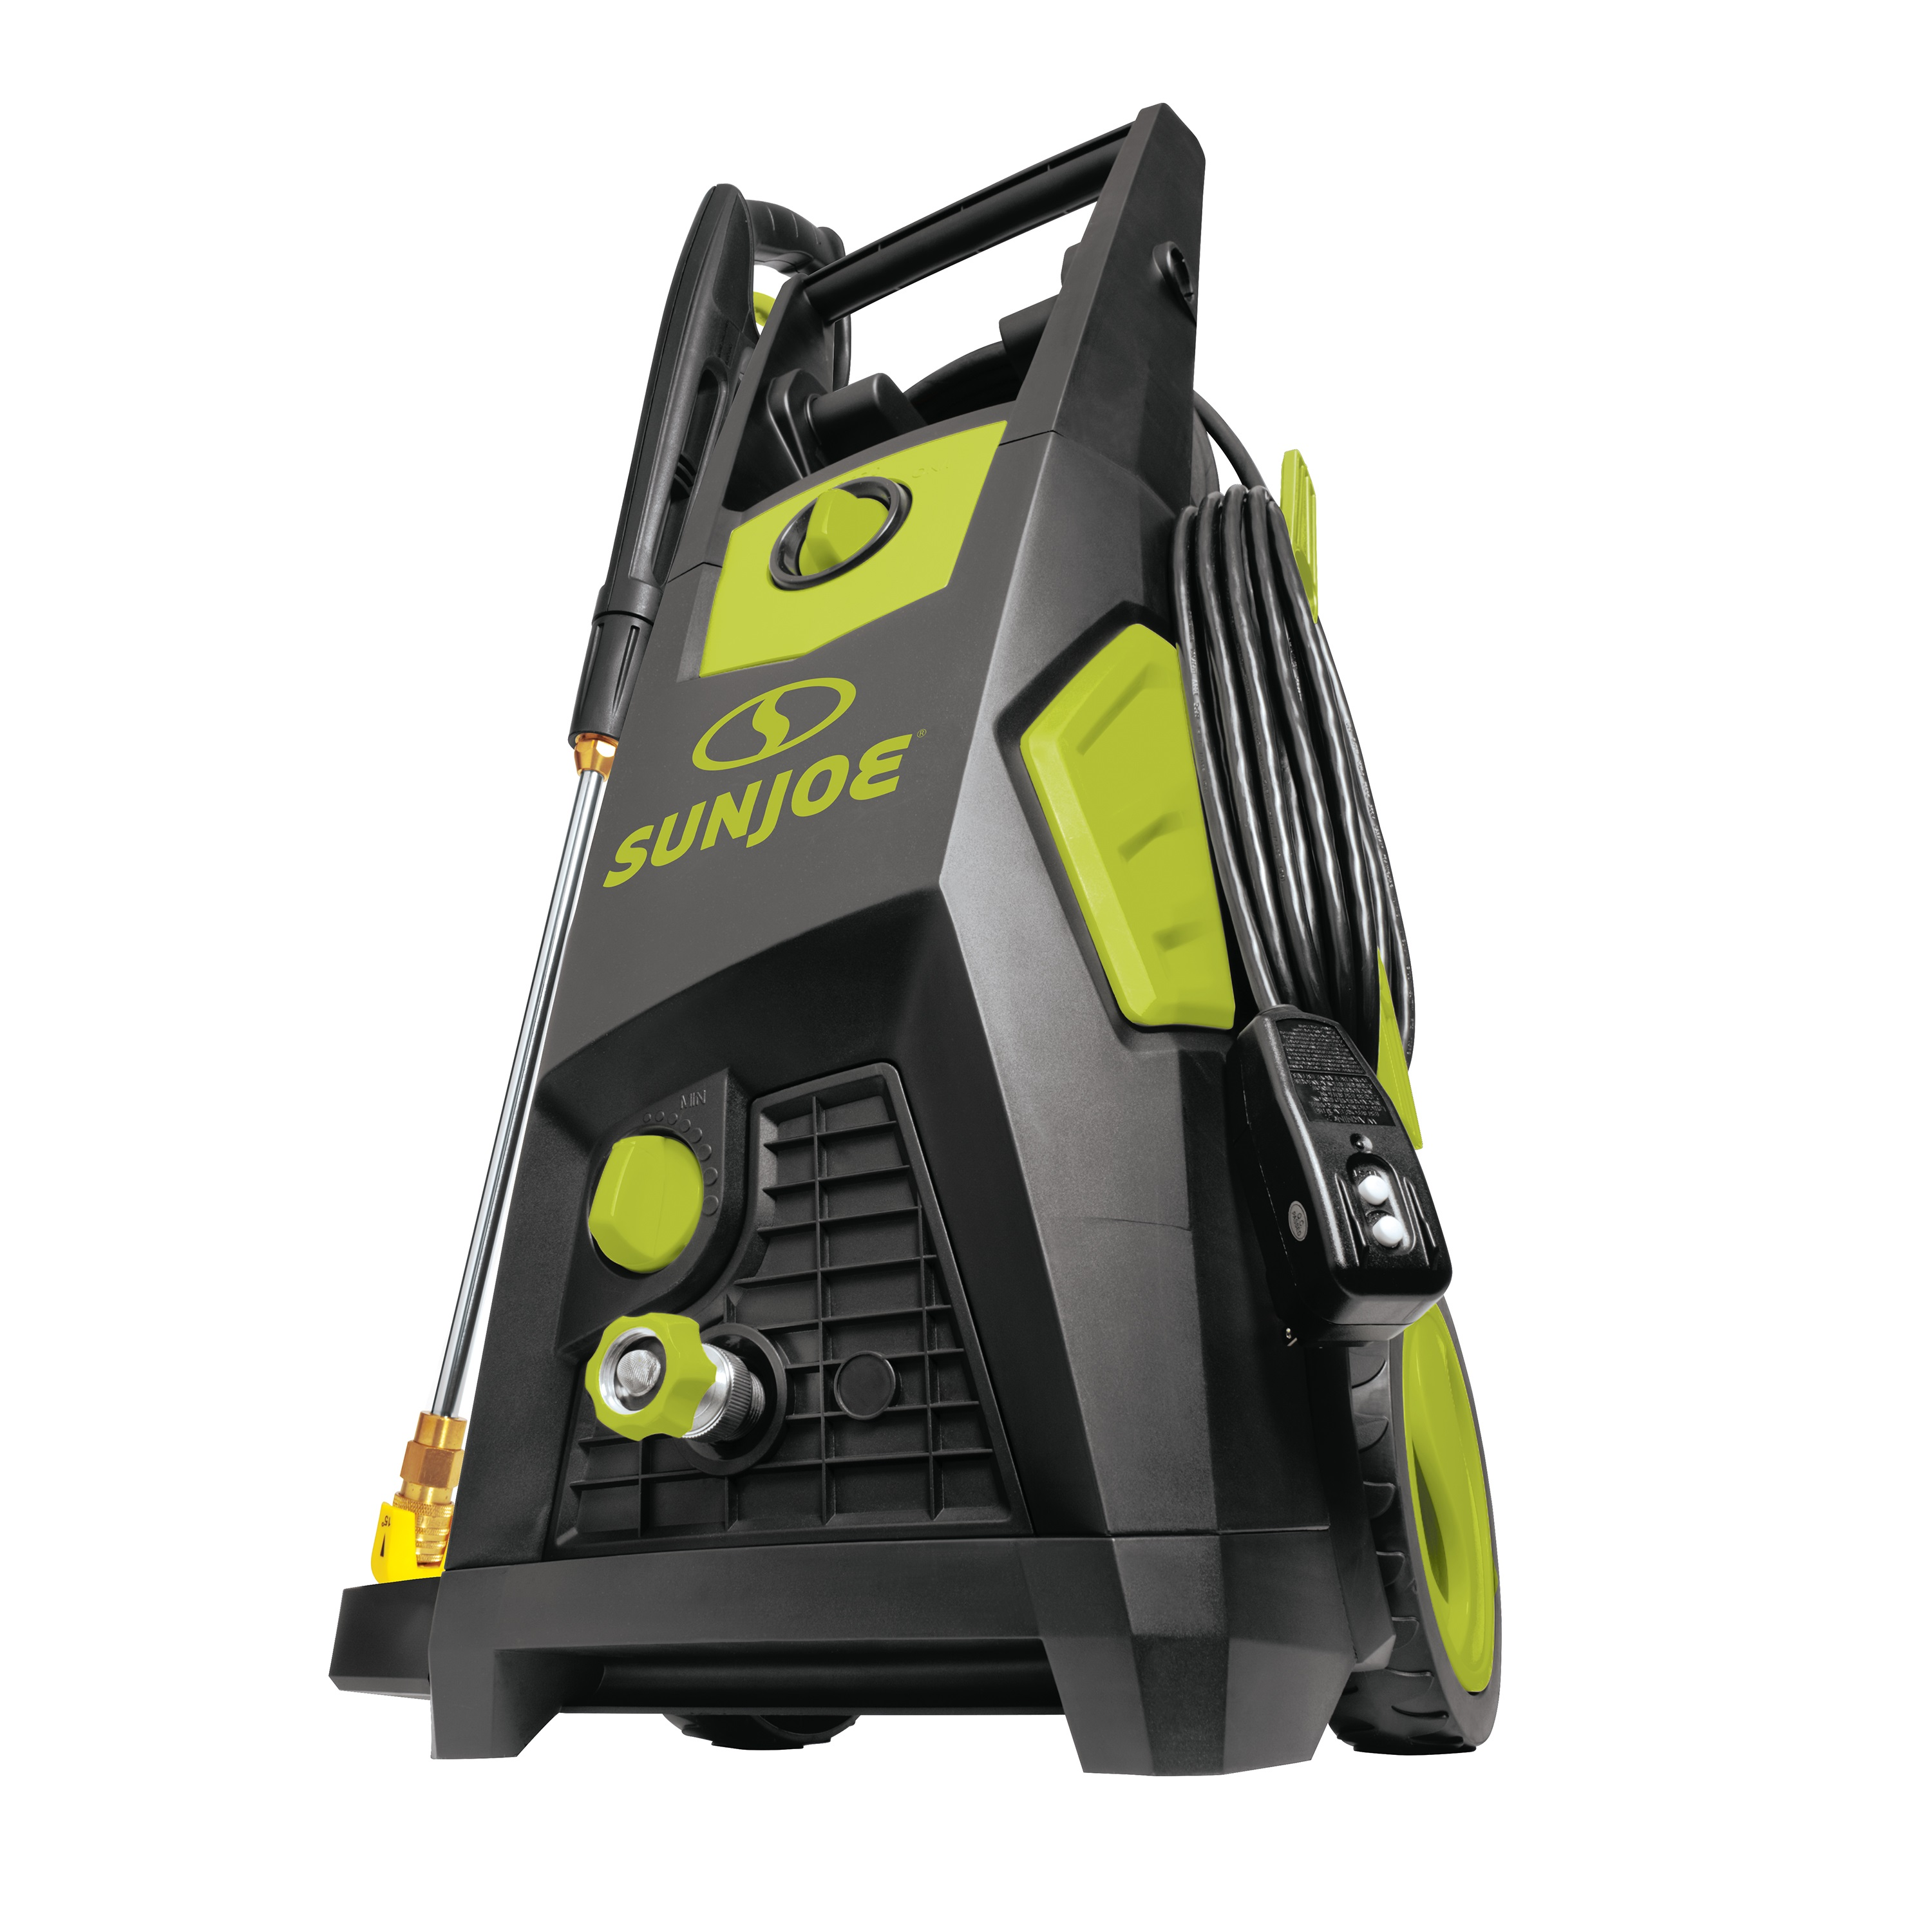 Sun Joe SPX3500 Brushless Induction Electric Pressure Washer w/Brass Hose Connector , 2300 PSI - 1.48 GPM